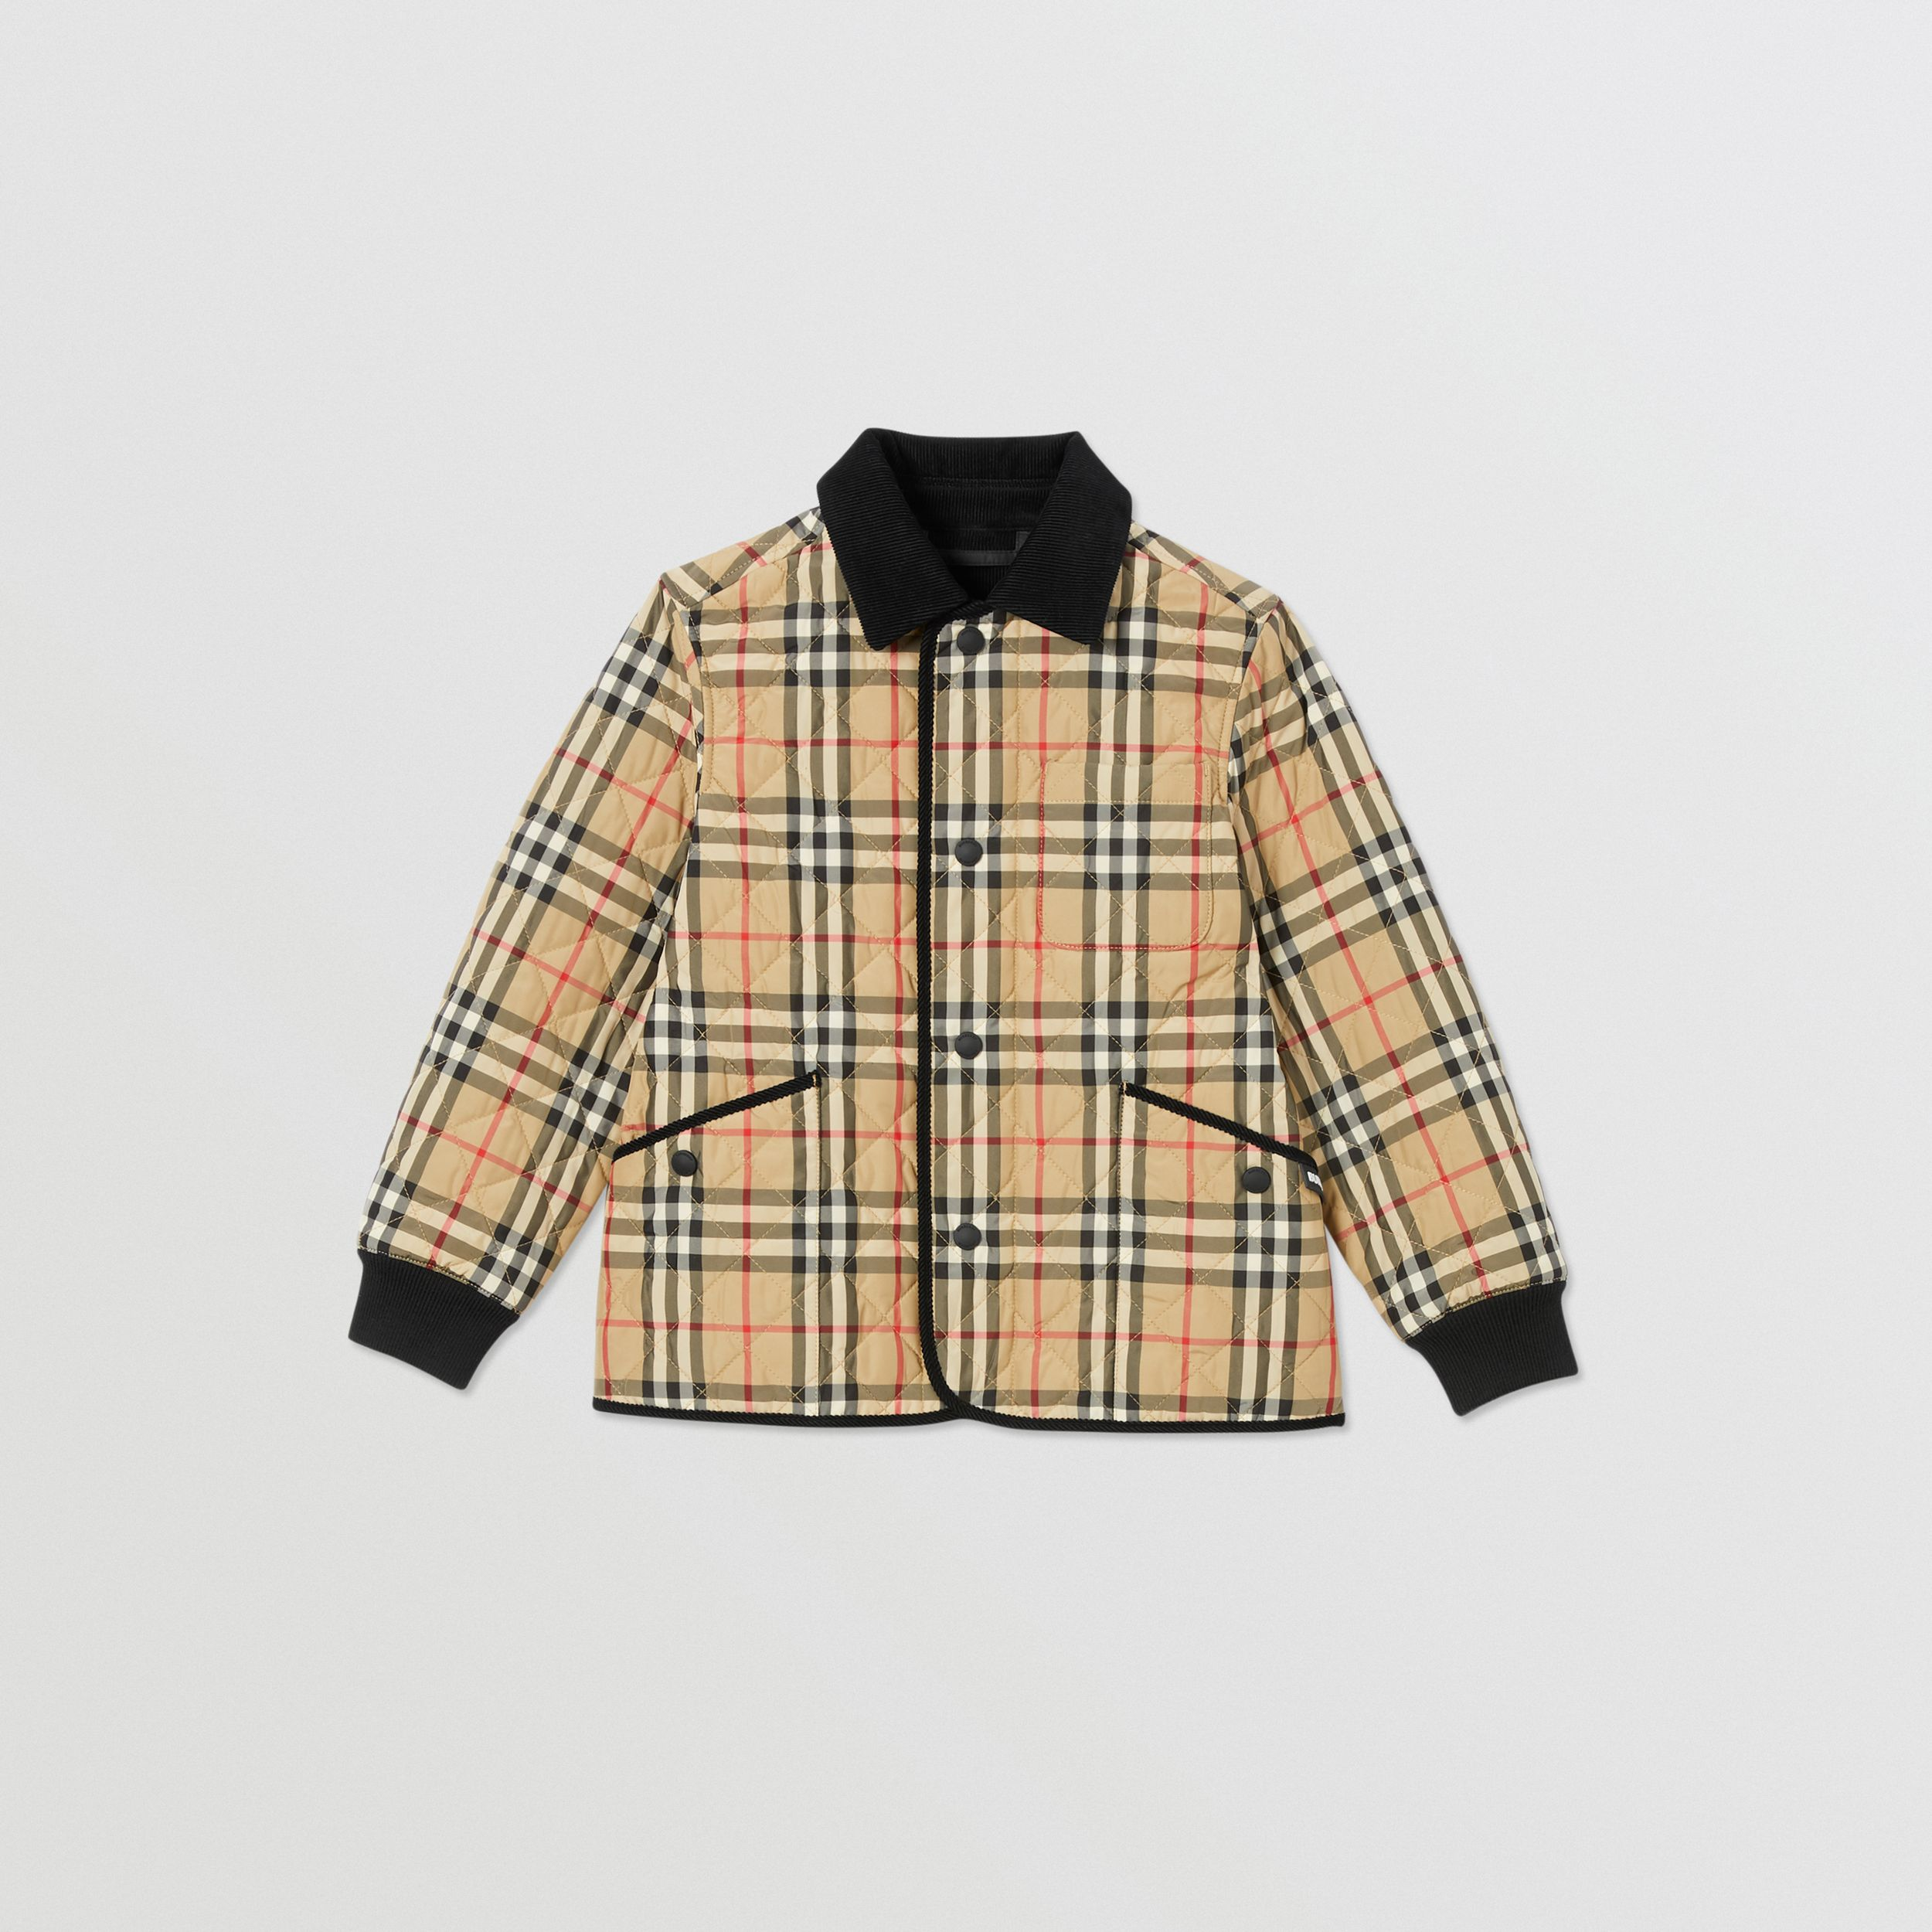 Corduroy Trim Vintage Check Diamond Quilted Jacket in Archive Beige | Burberry United States - 1